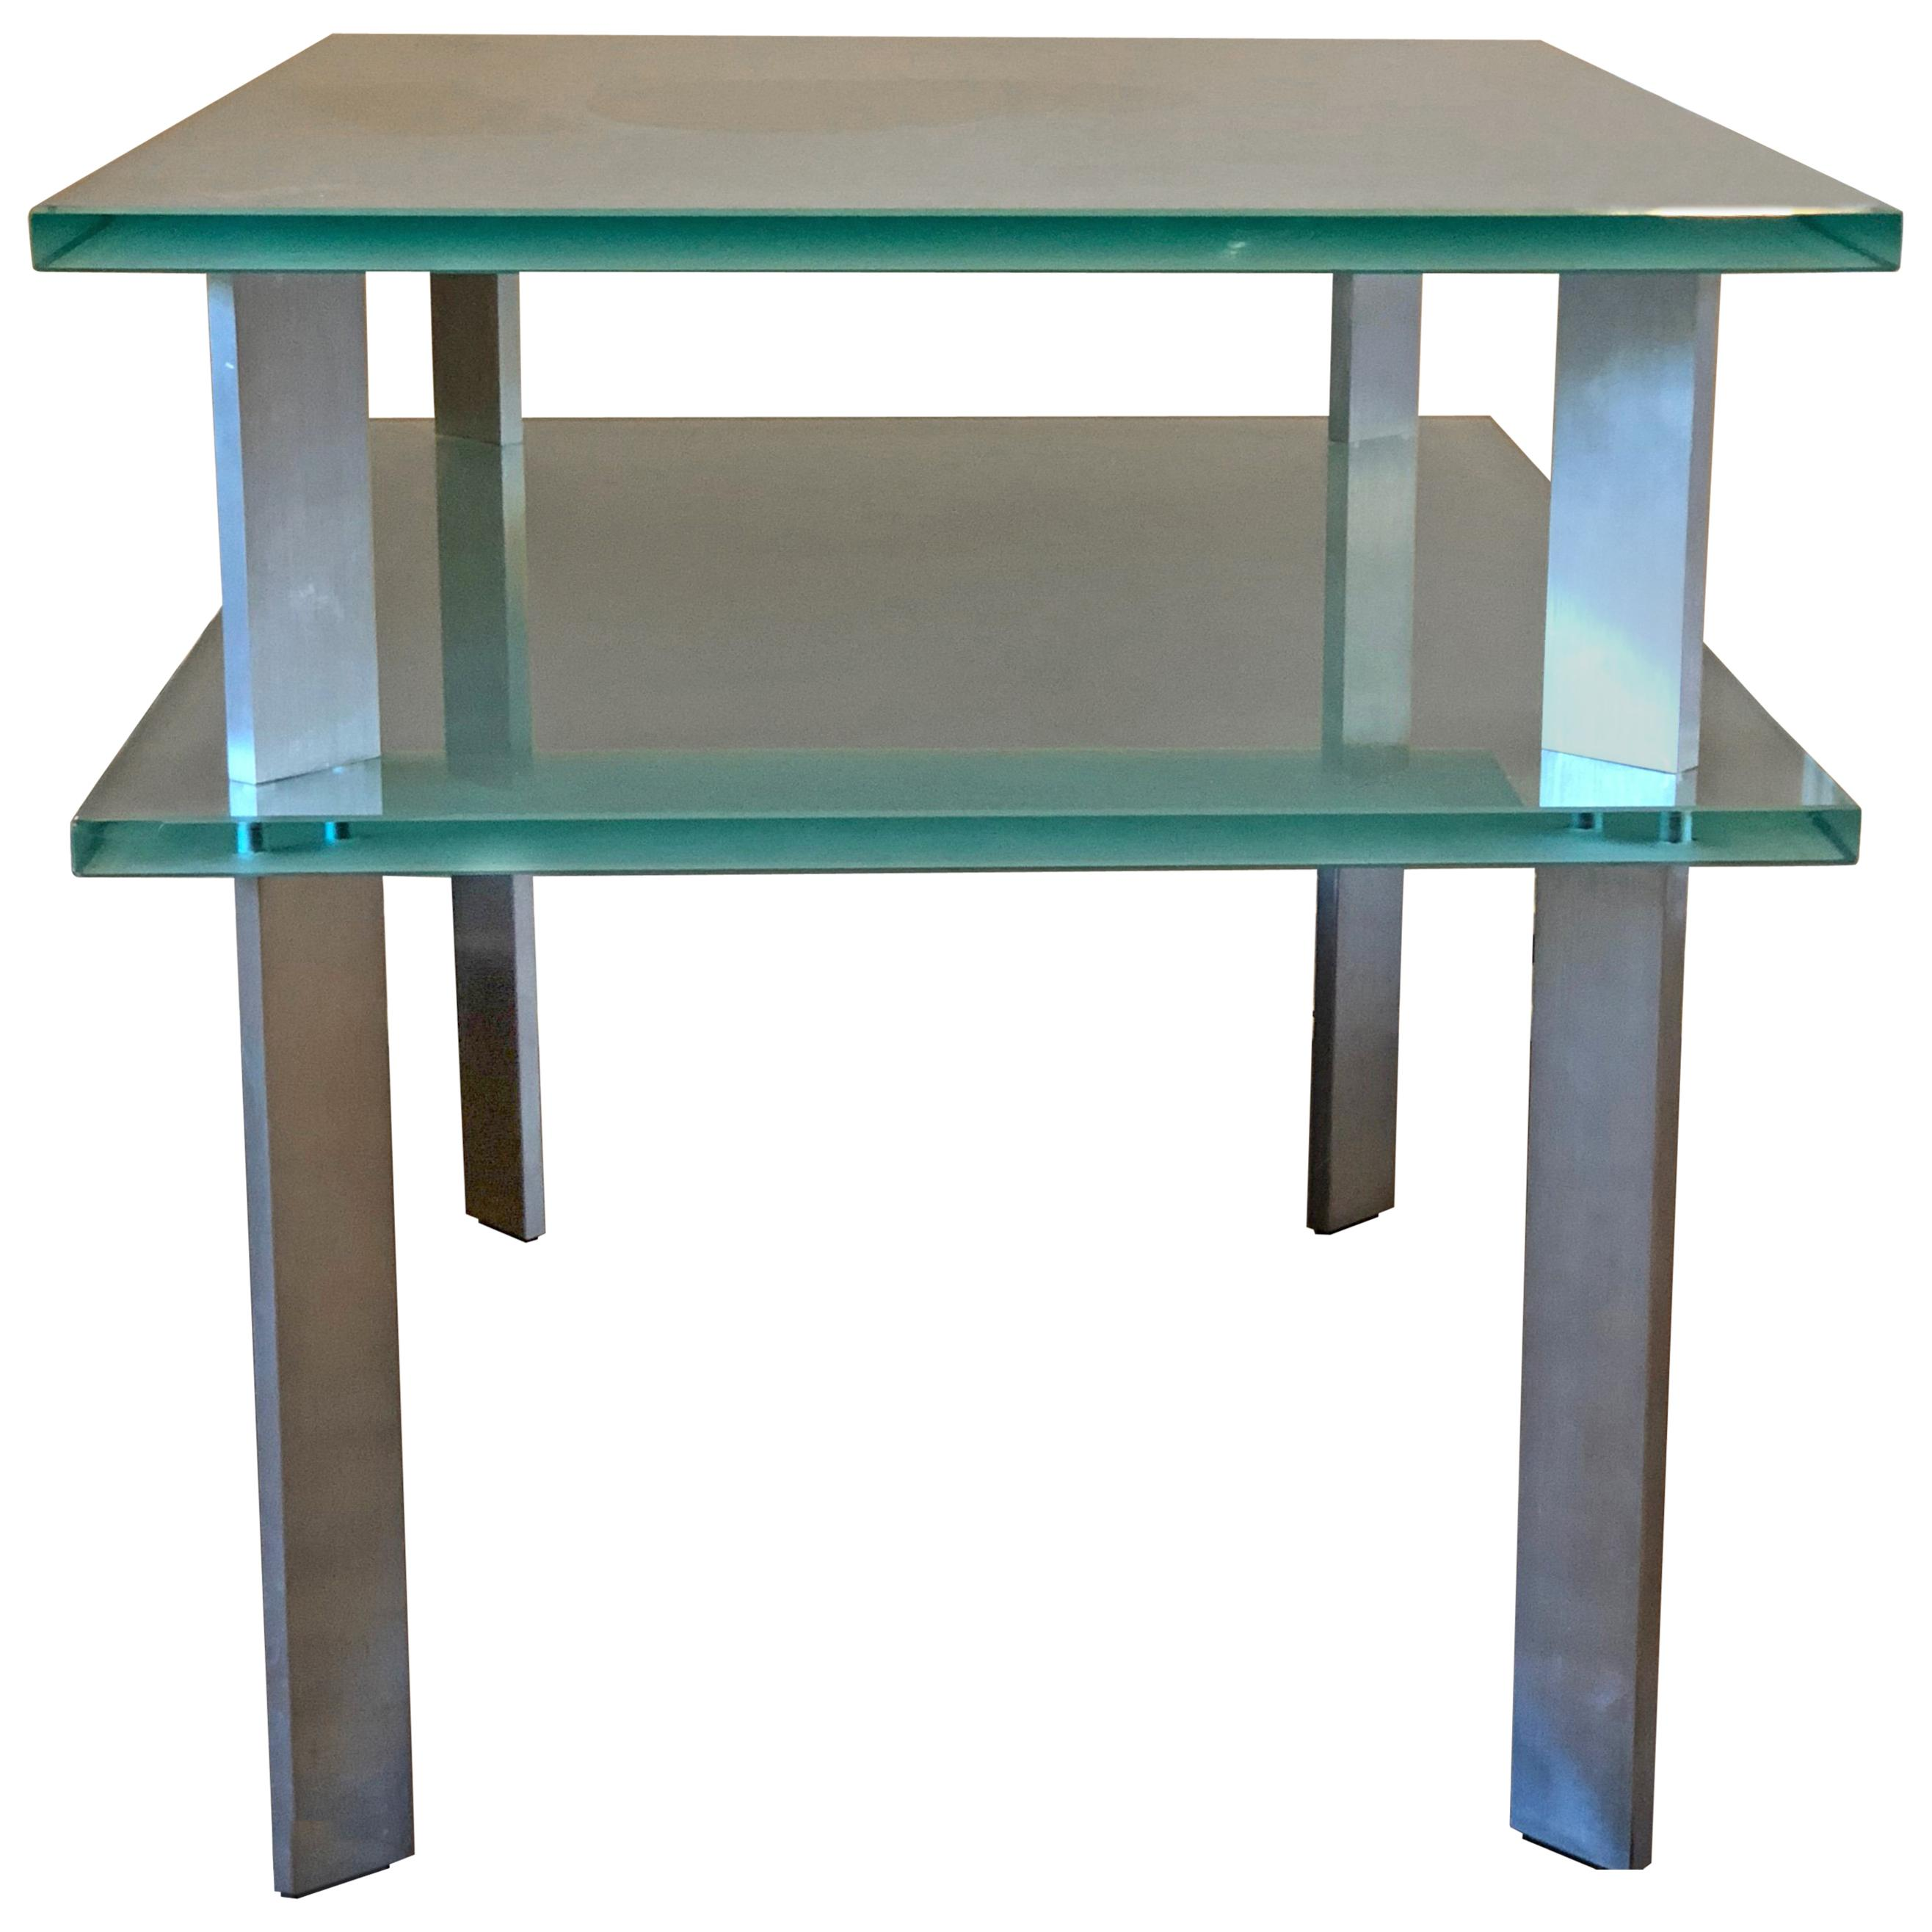 distressed tables setting accent table painted red target white gold console rustic inlay outdoor silver turquoise black end and side purple settings tablescapes full size antique